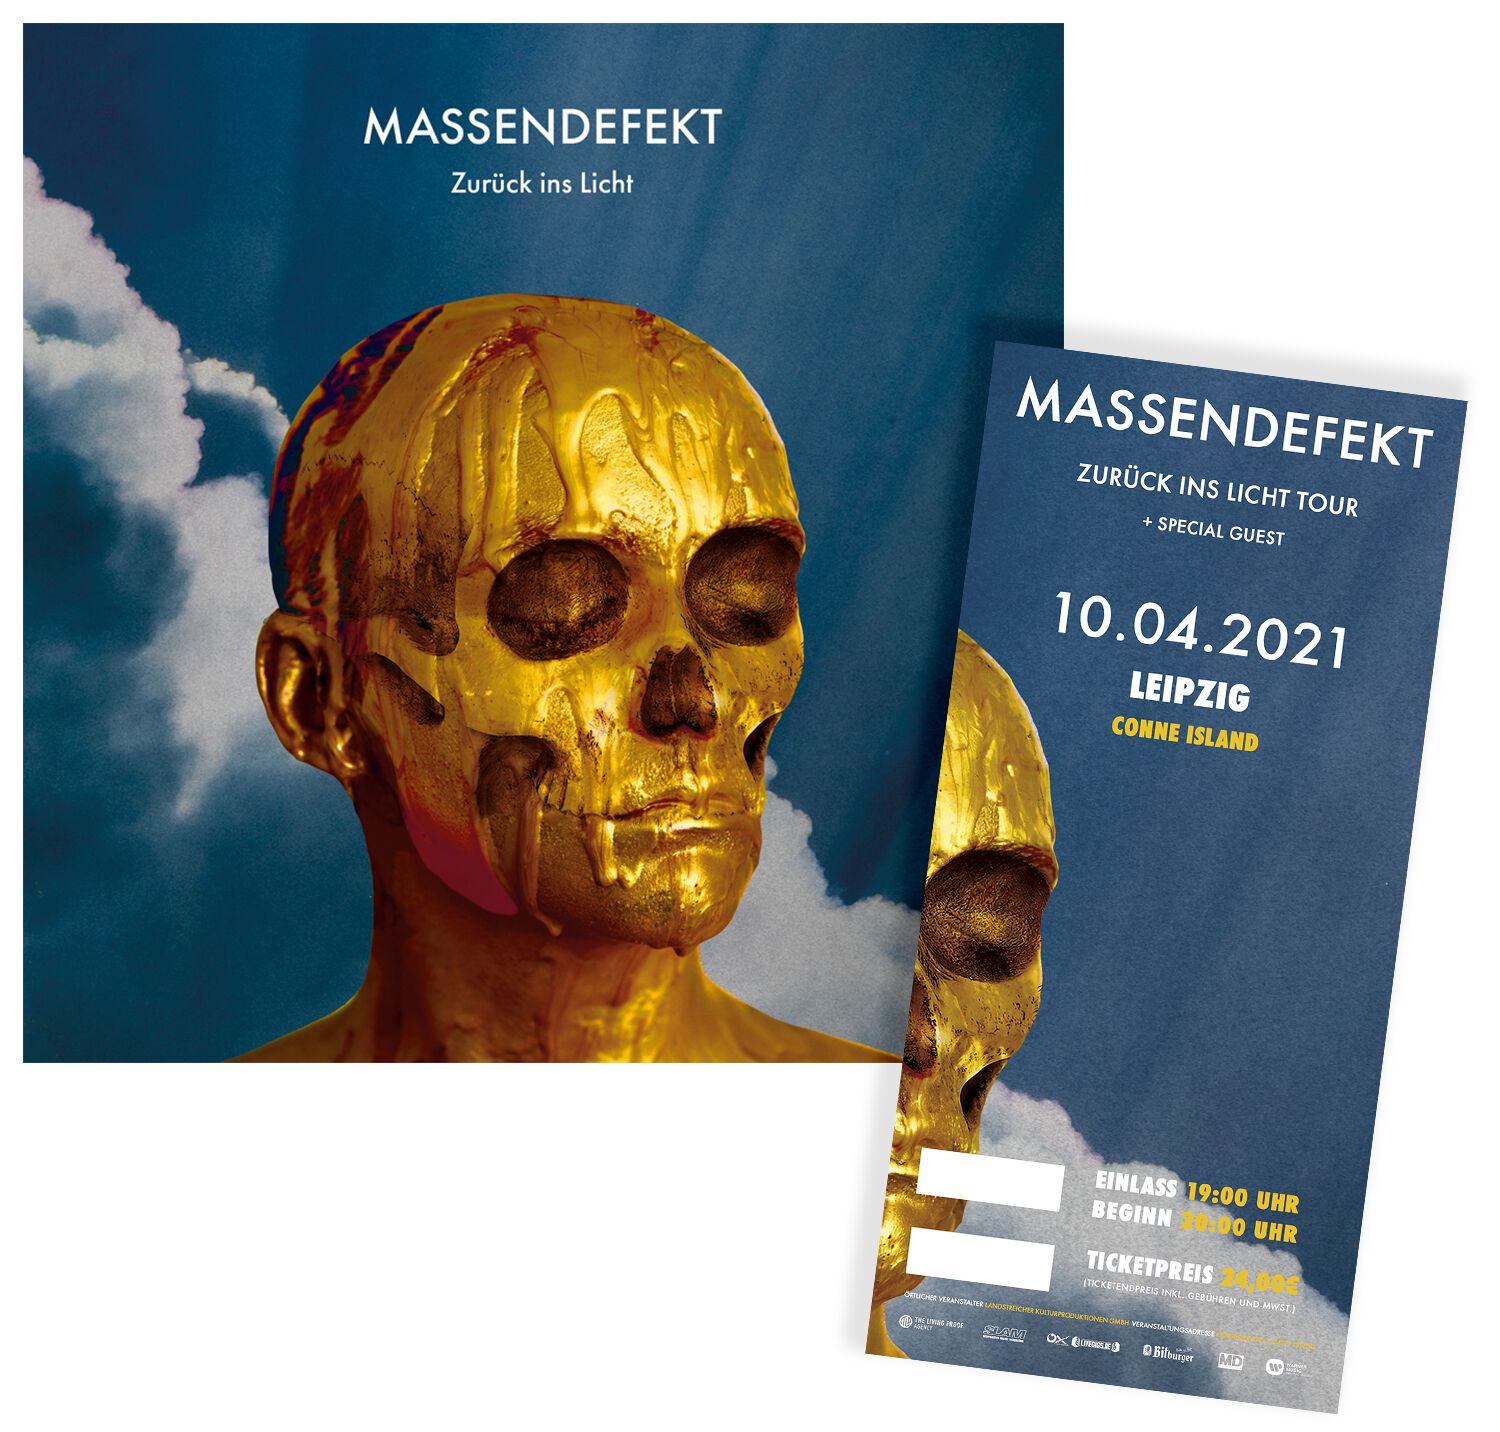 Image of Massendefekt Zurück ins Licht - Leipzig - 10.04.2021 - Conne Island CD & Ticket Standard